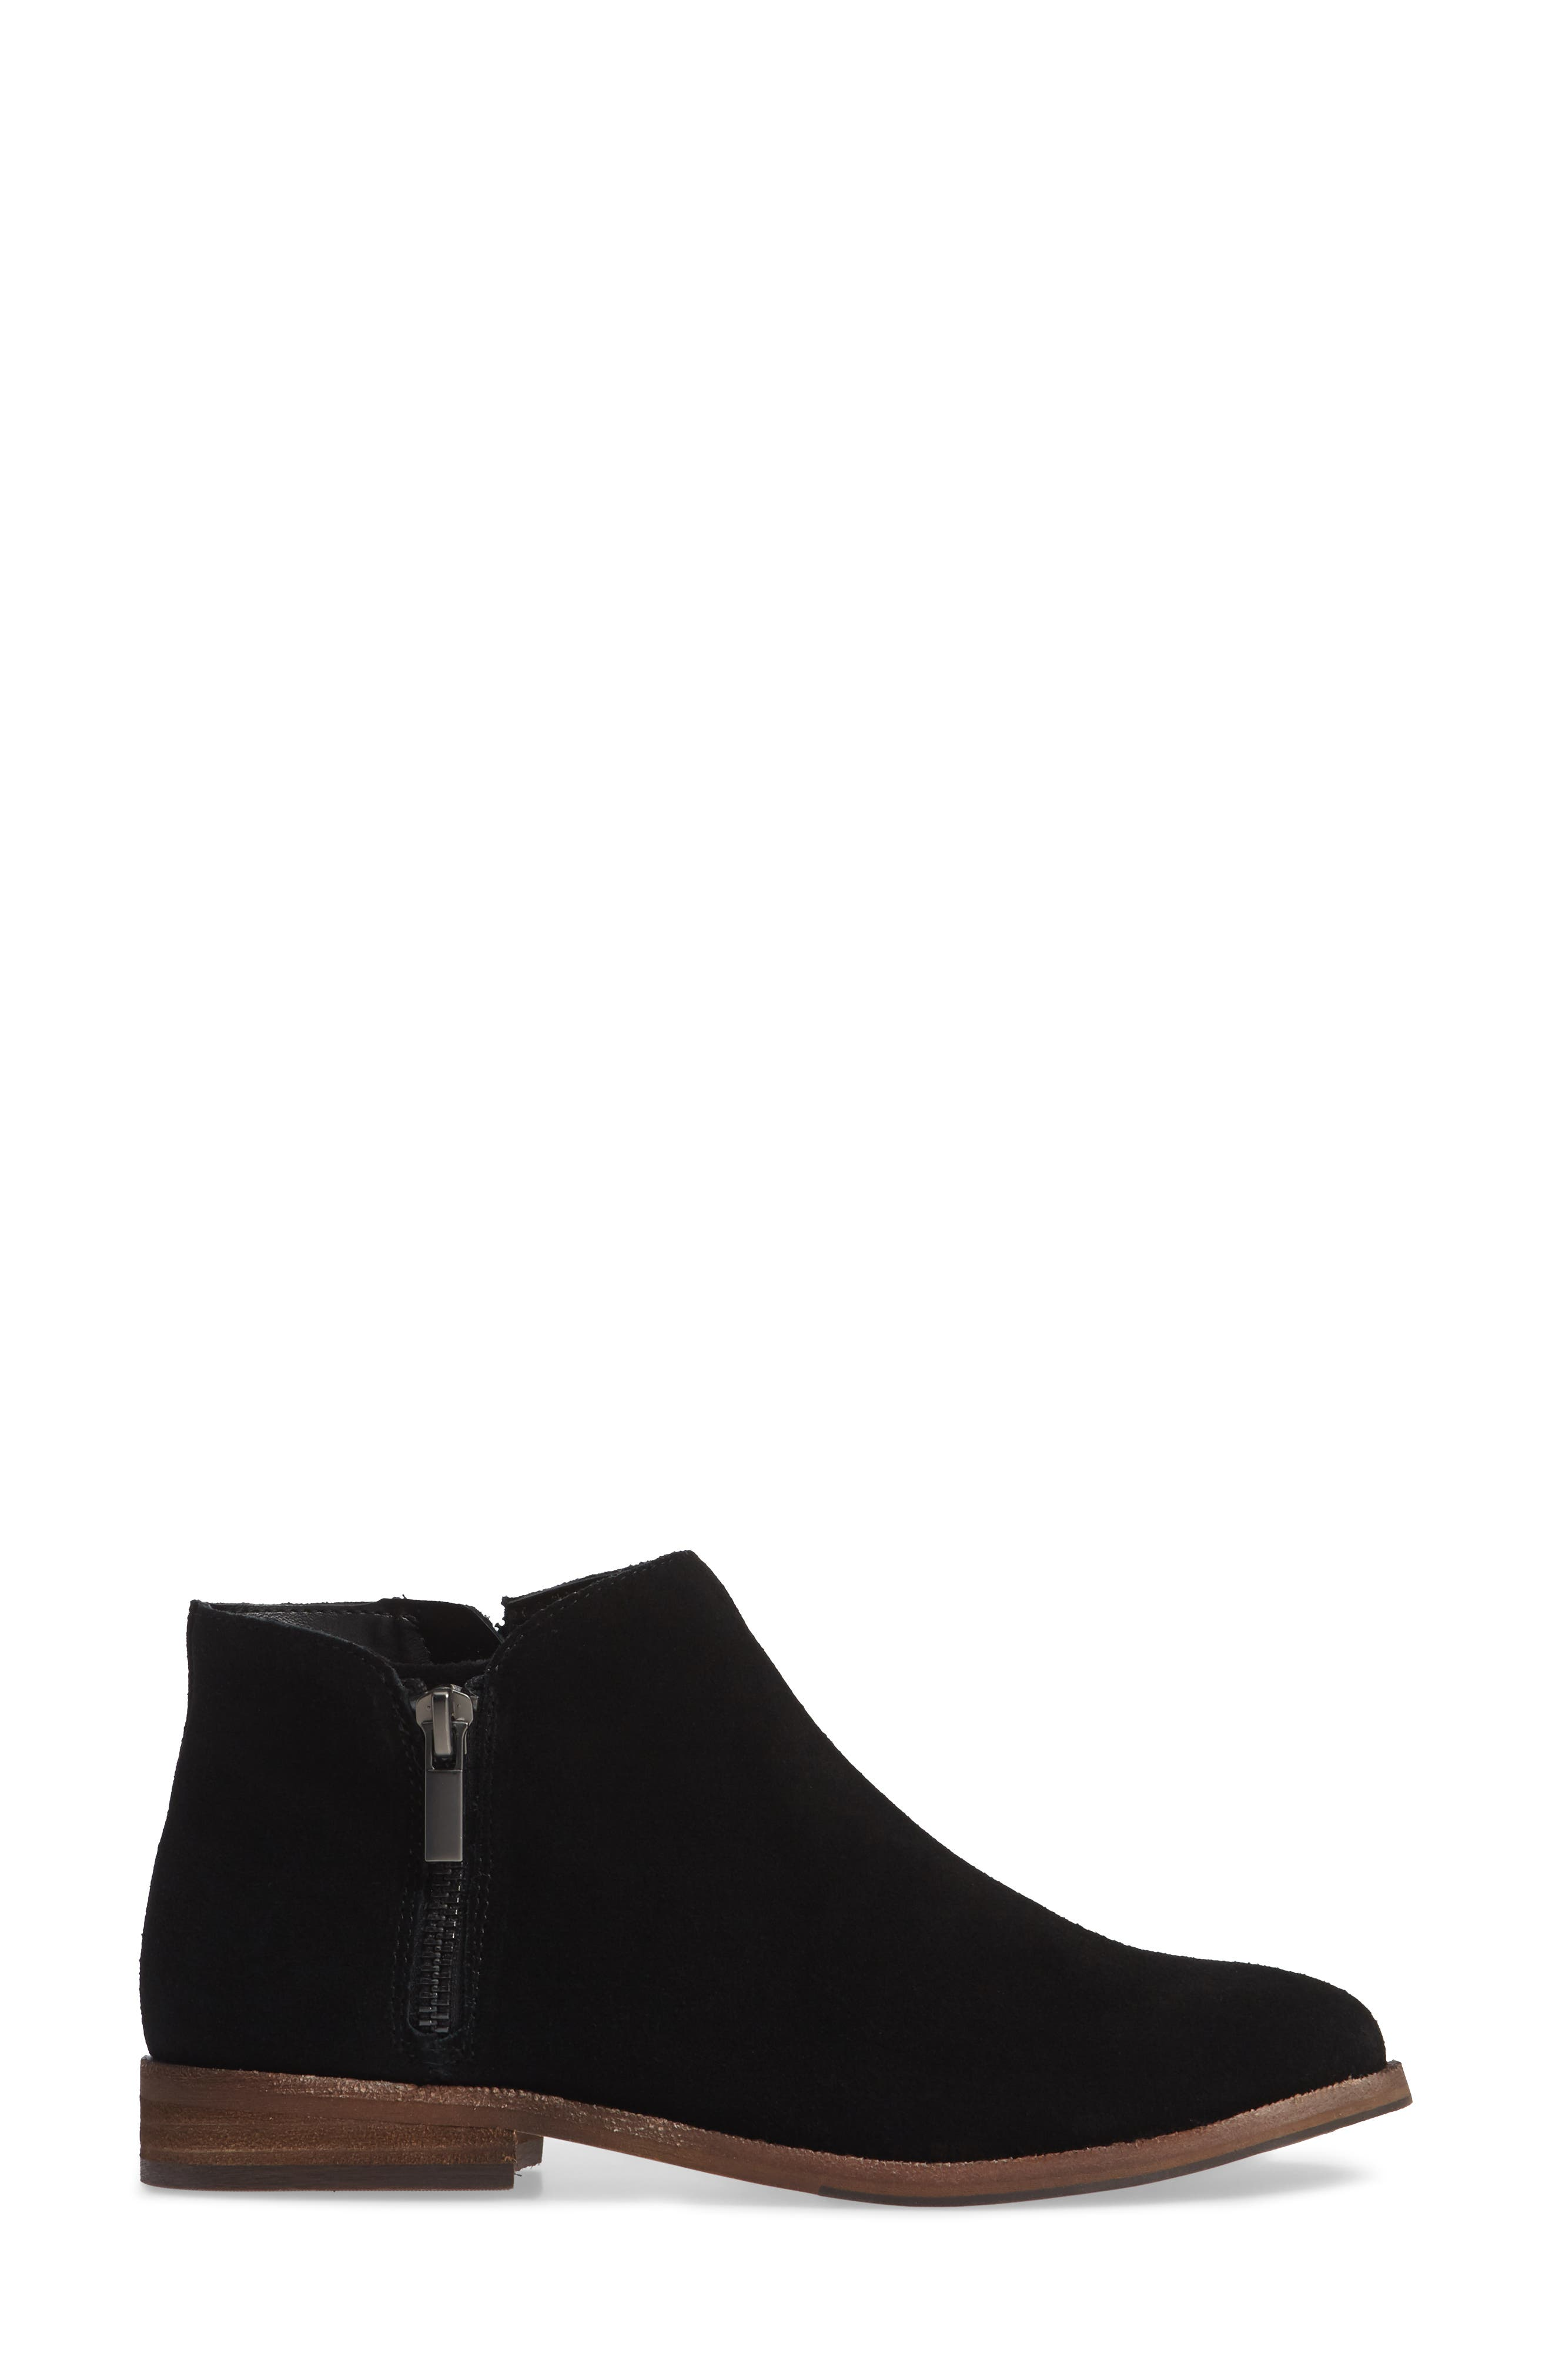 Bevlyn Bootie,                             Alternate thumbnail 3, color,                             BLACK SUEDE